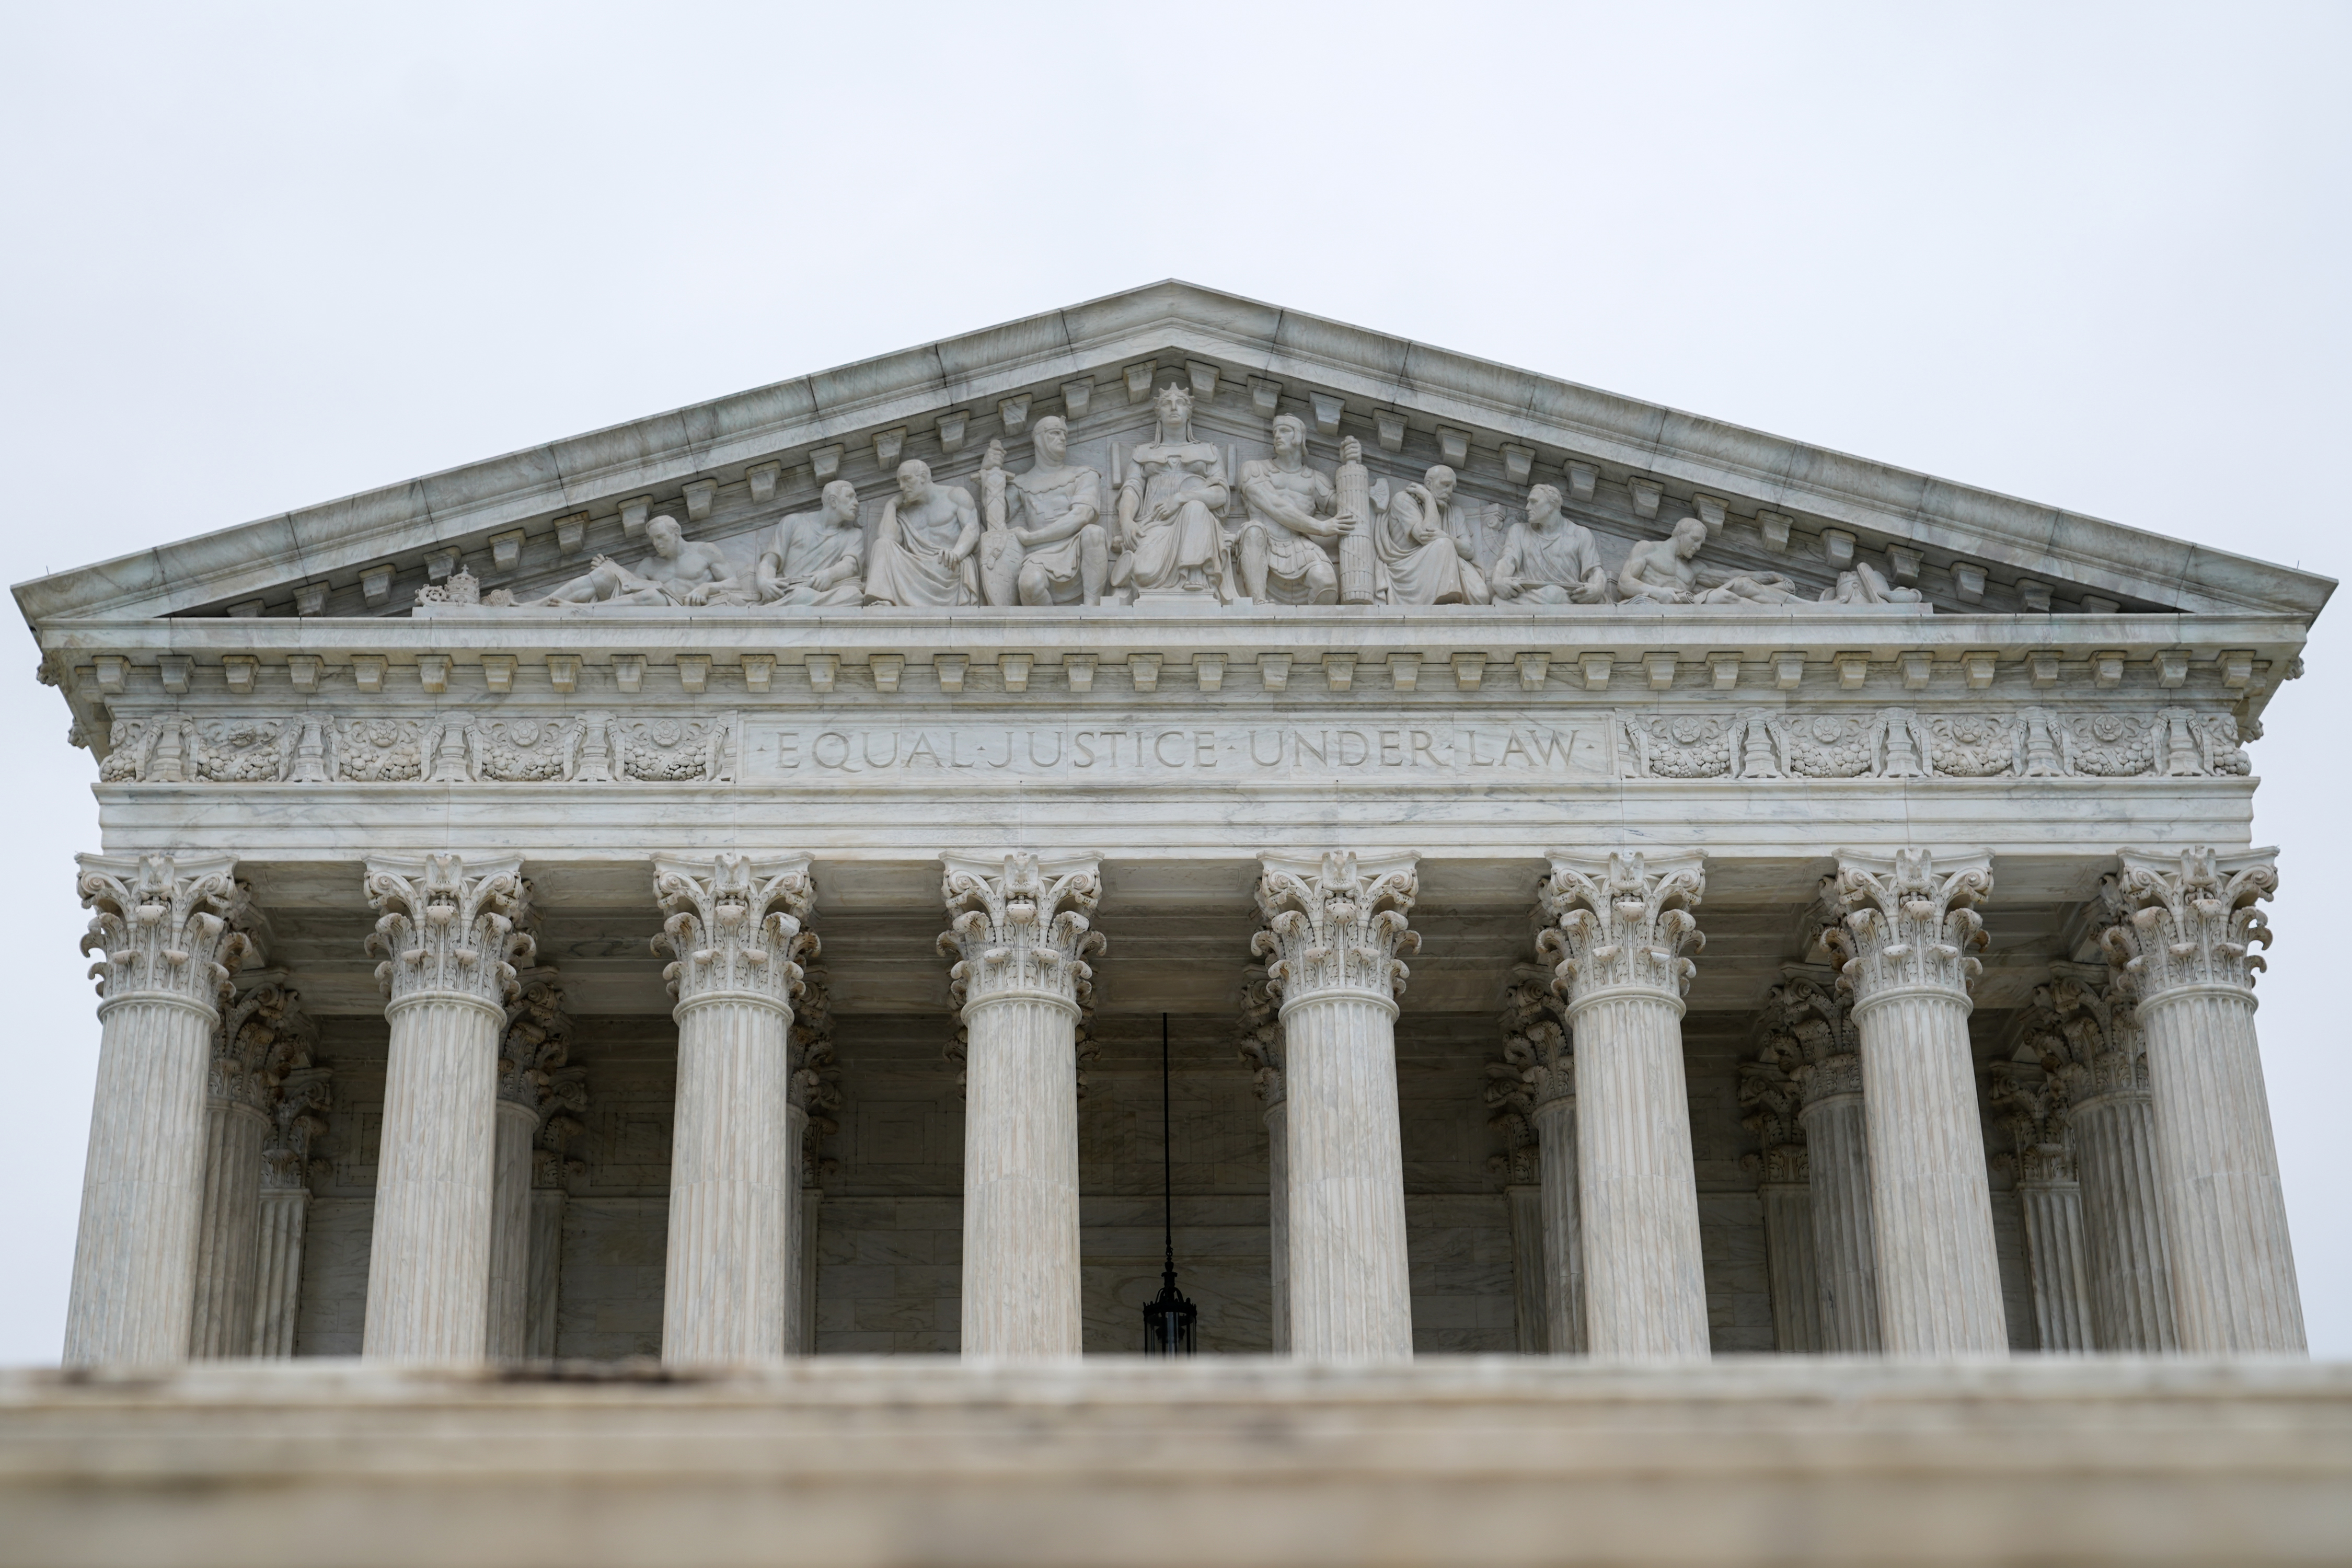 FILE PHOTO: The U.S. Supreme Court is seen as the court nears the end of its term in Washington, U.S., June 11, 2018. REUTERS/Erin Schaff